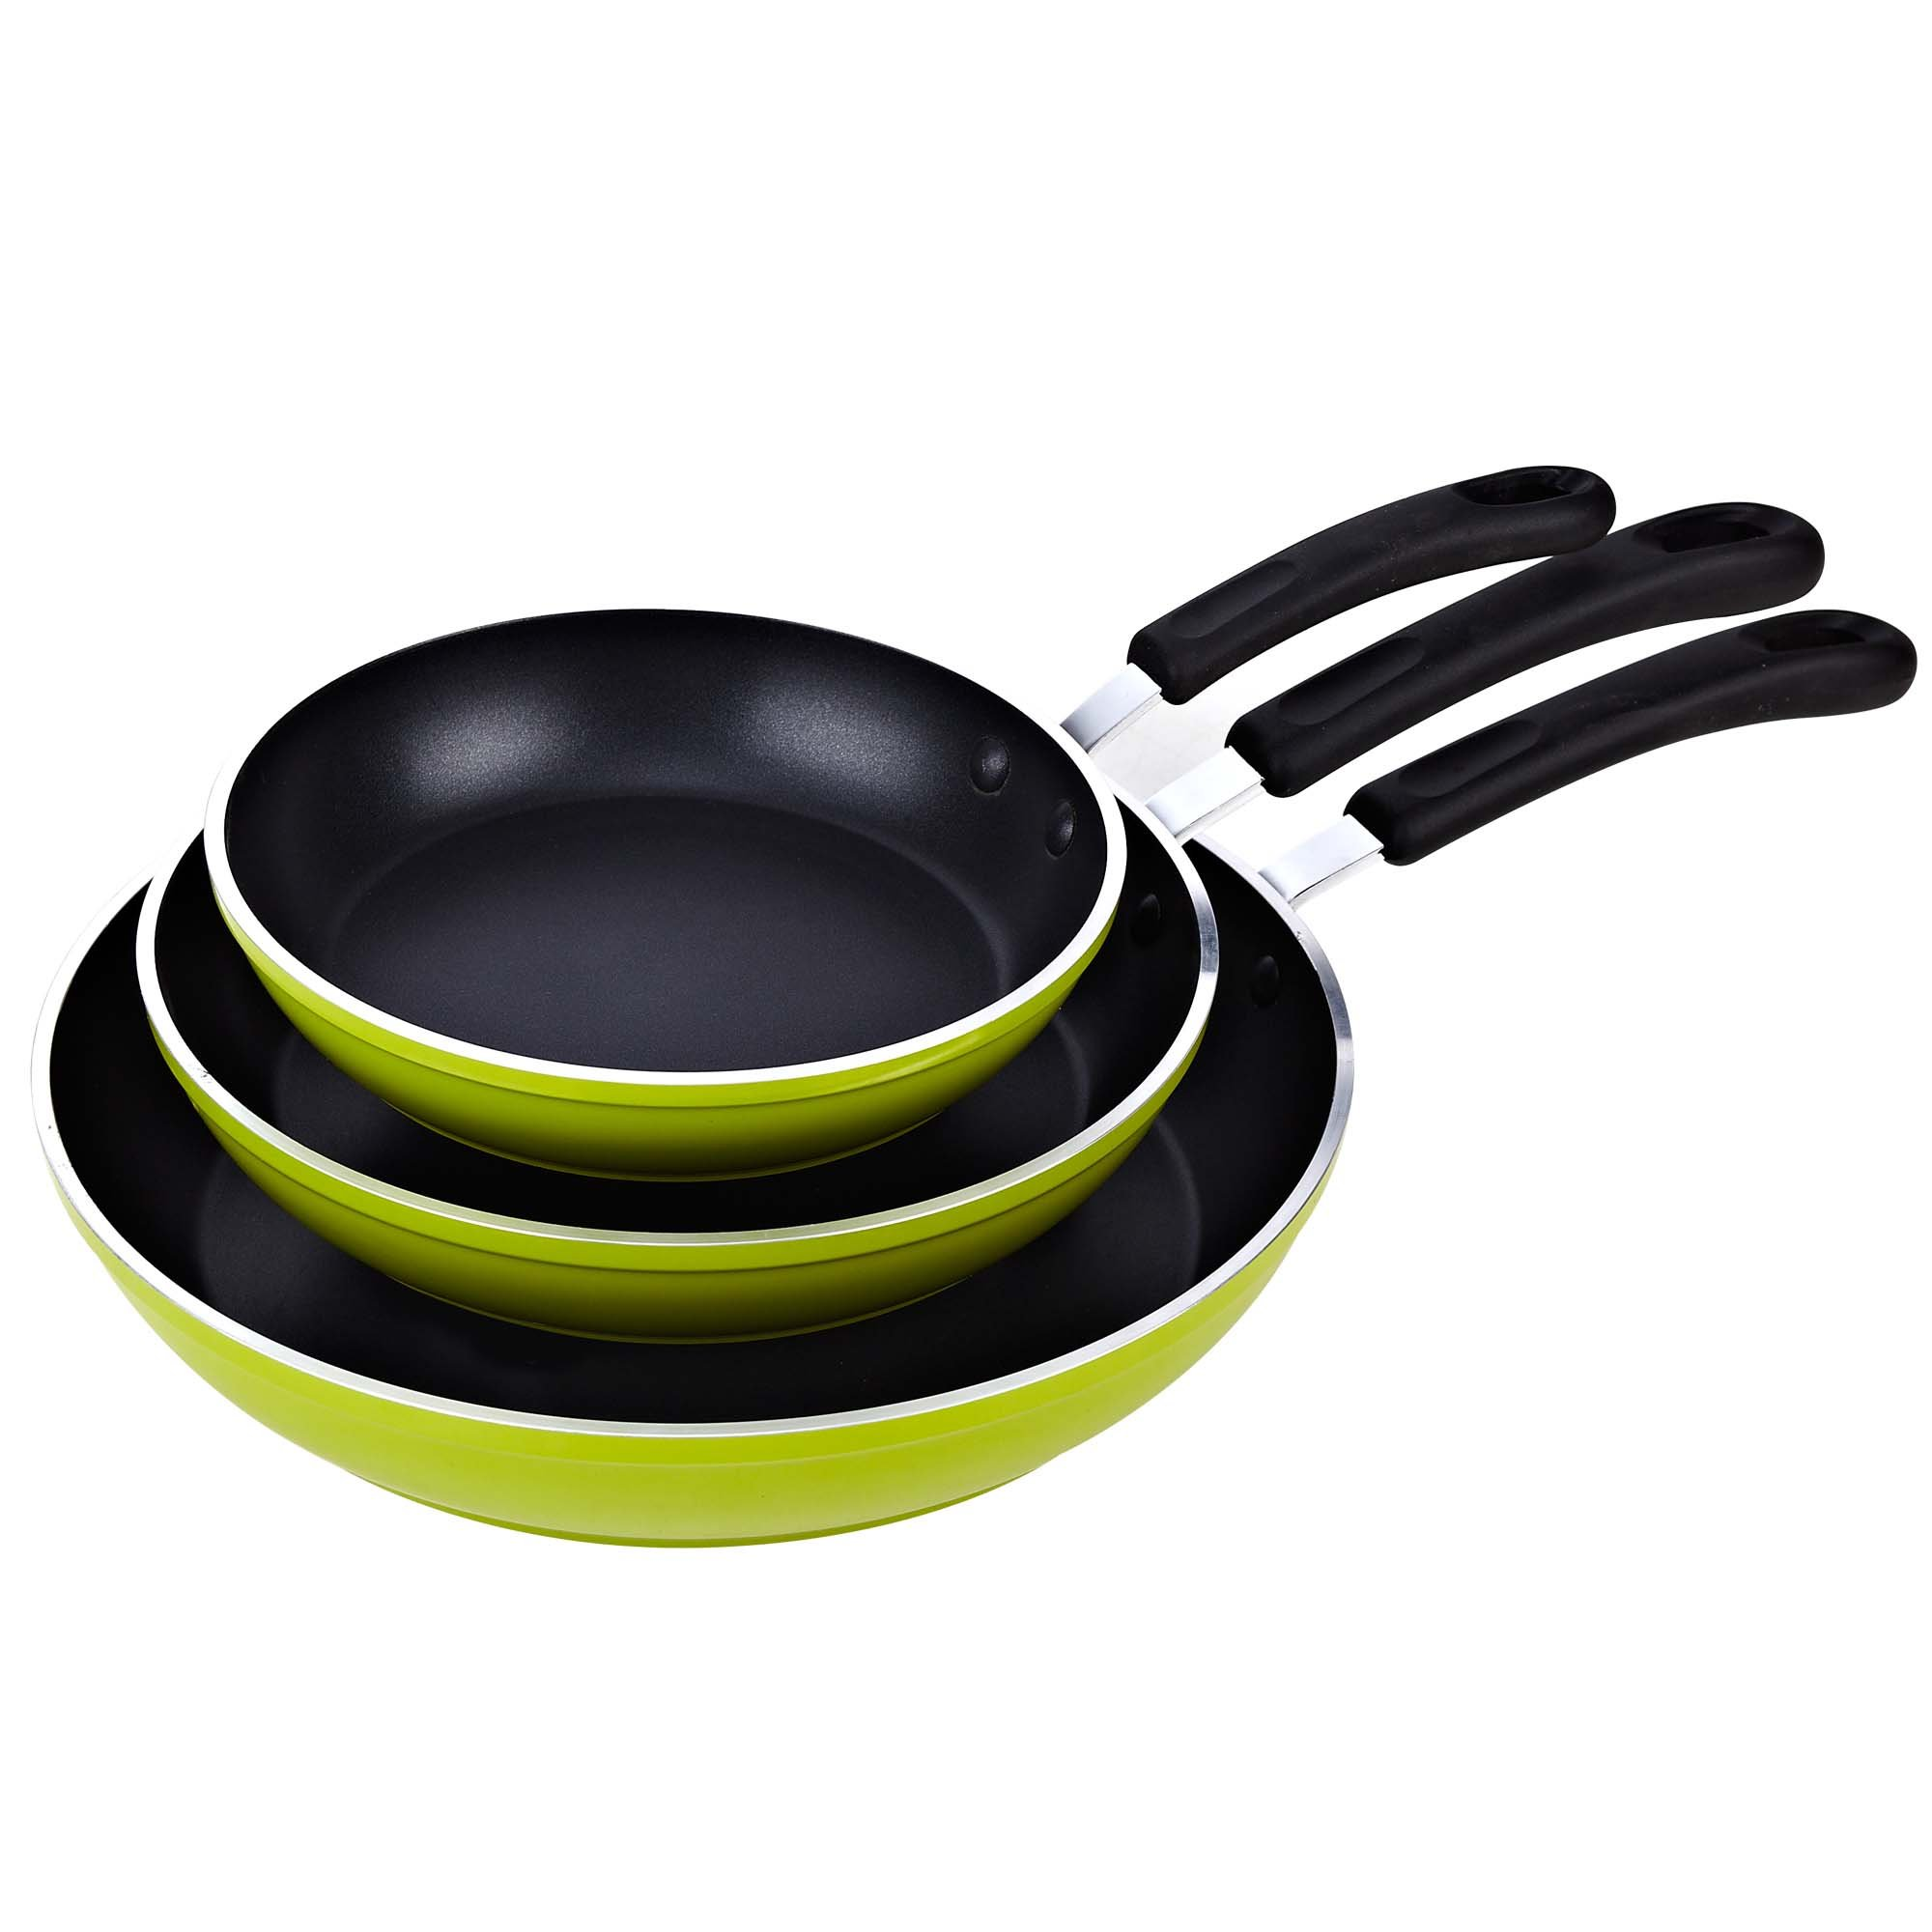 Cook N Home 8, 10, and 12-Inch Nonstick Fry Saute Pan 3-Piece Set, Green